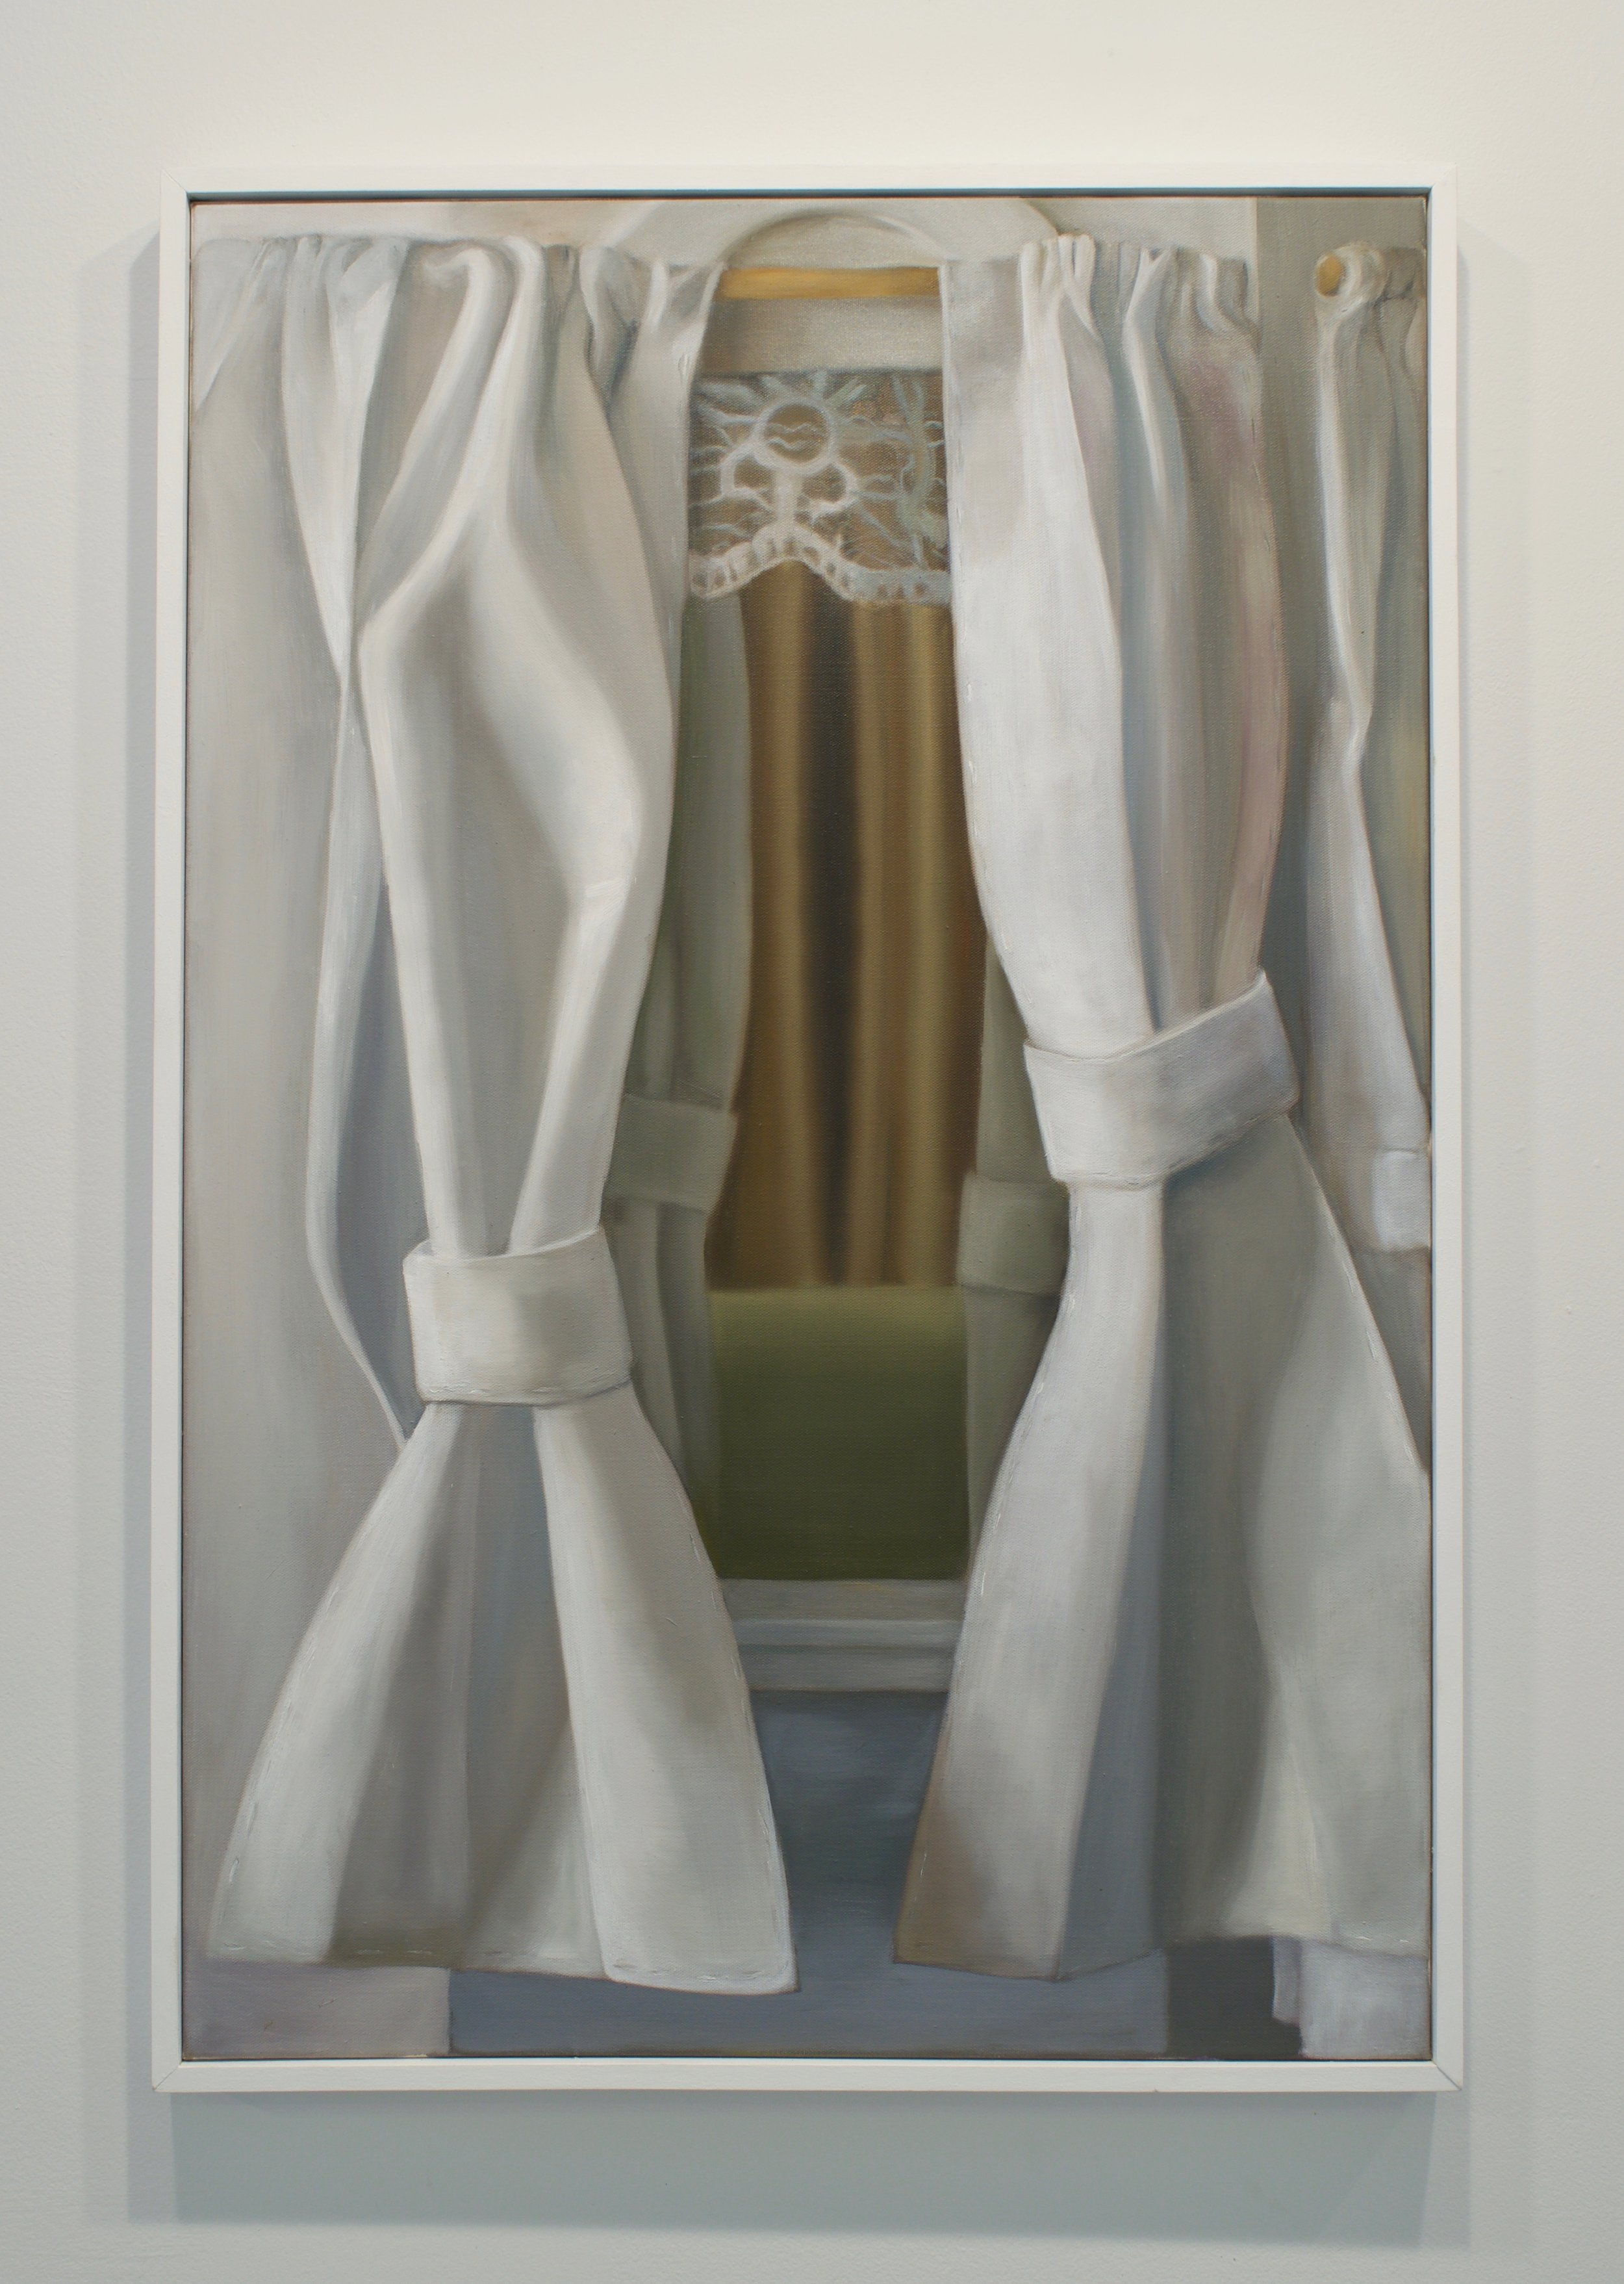 """Emily Quinn, """"Looking in/ Looking Out"""", 2017. Oil on canvas, 37 x 25 in."""